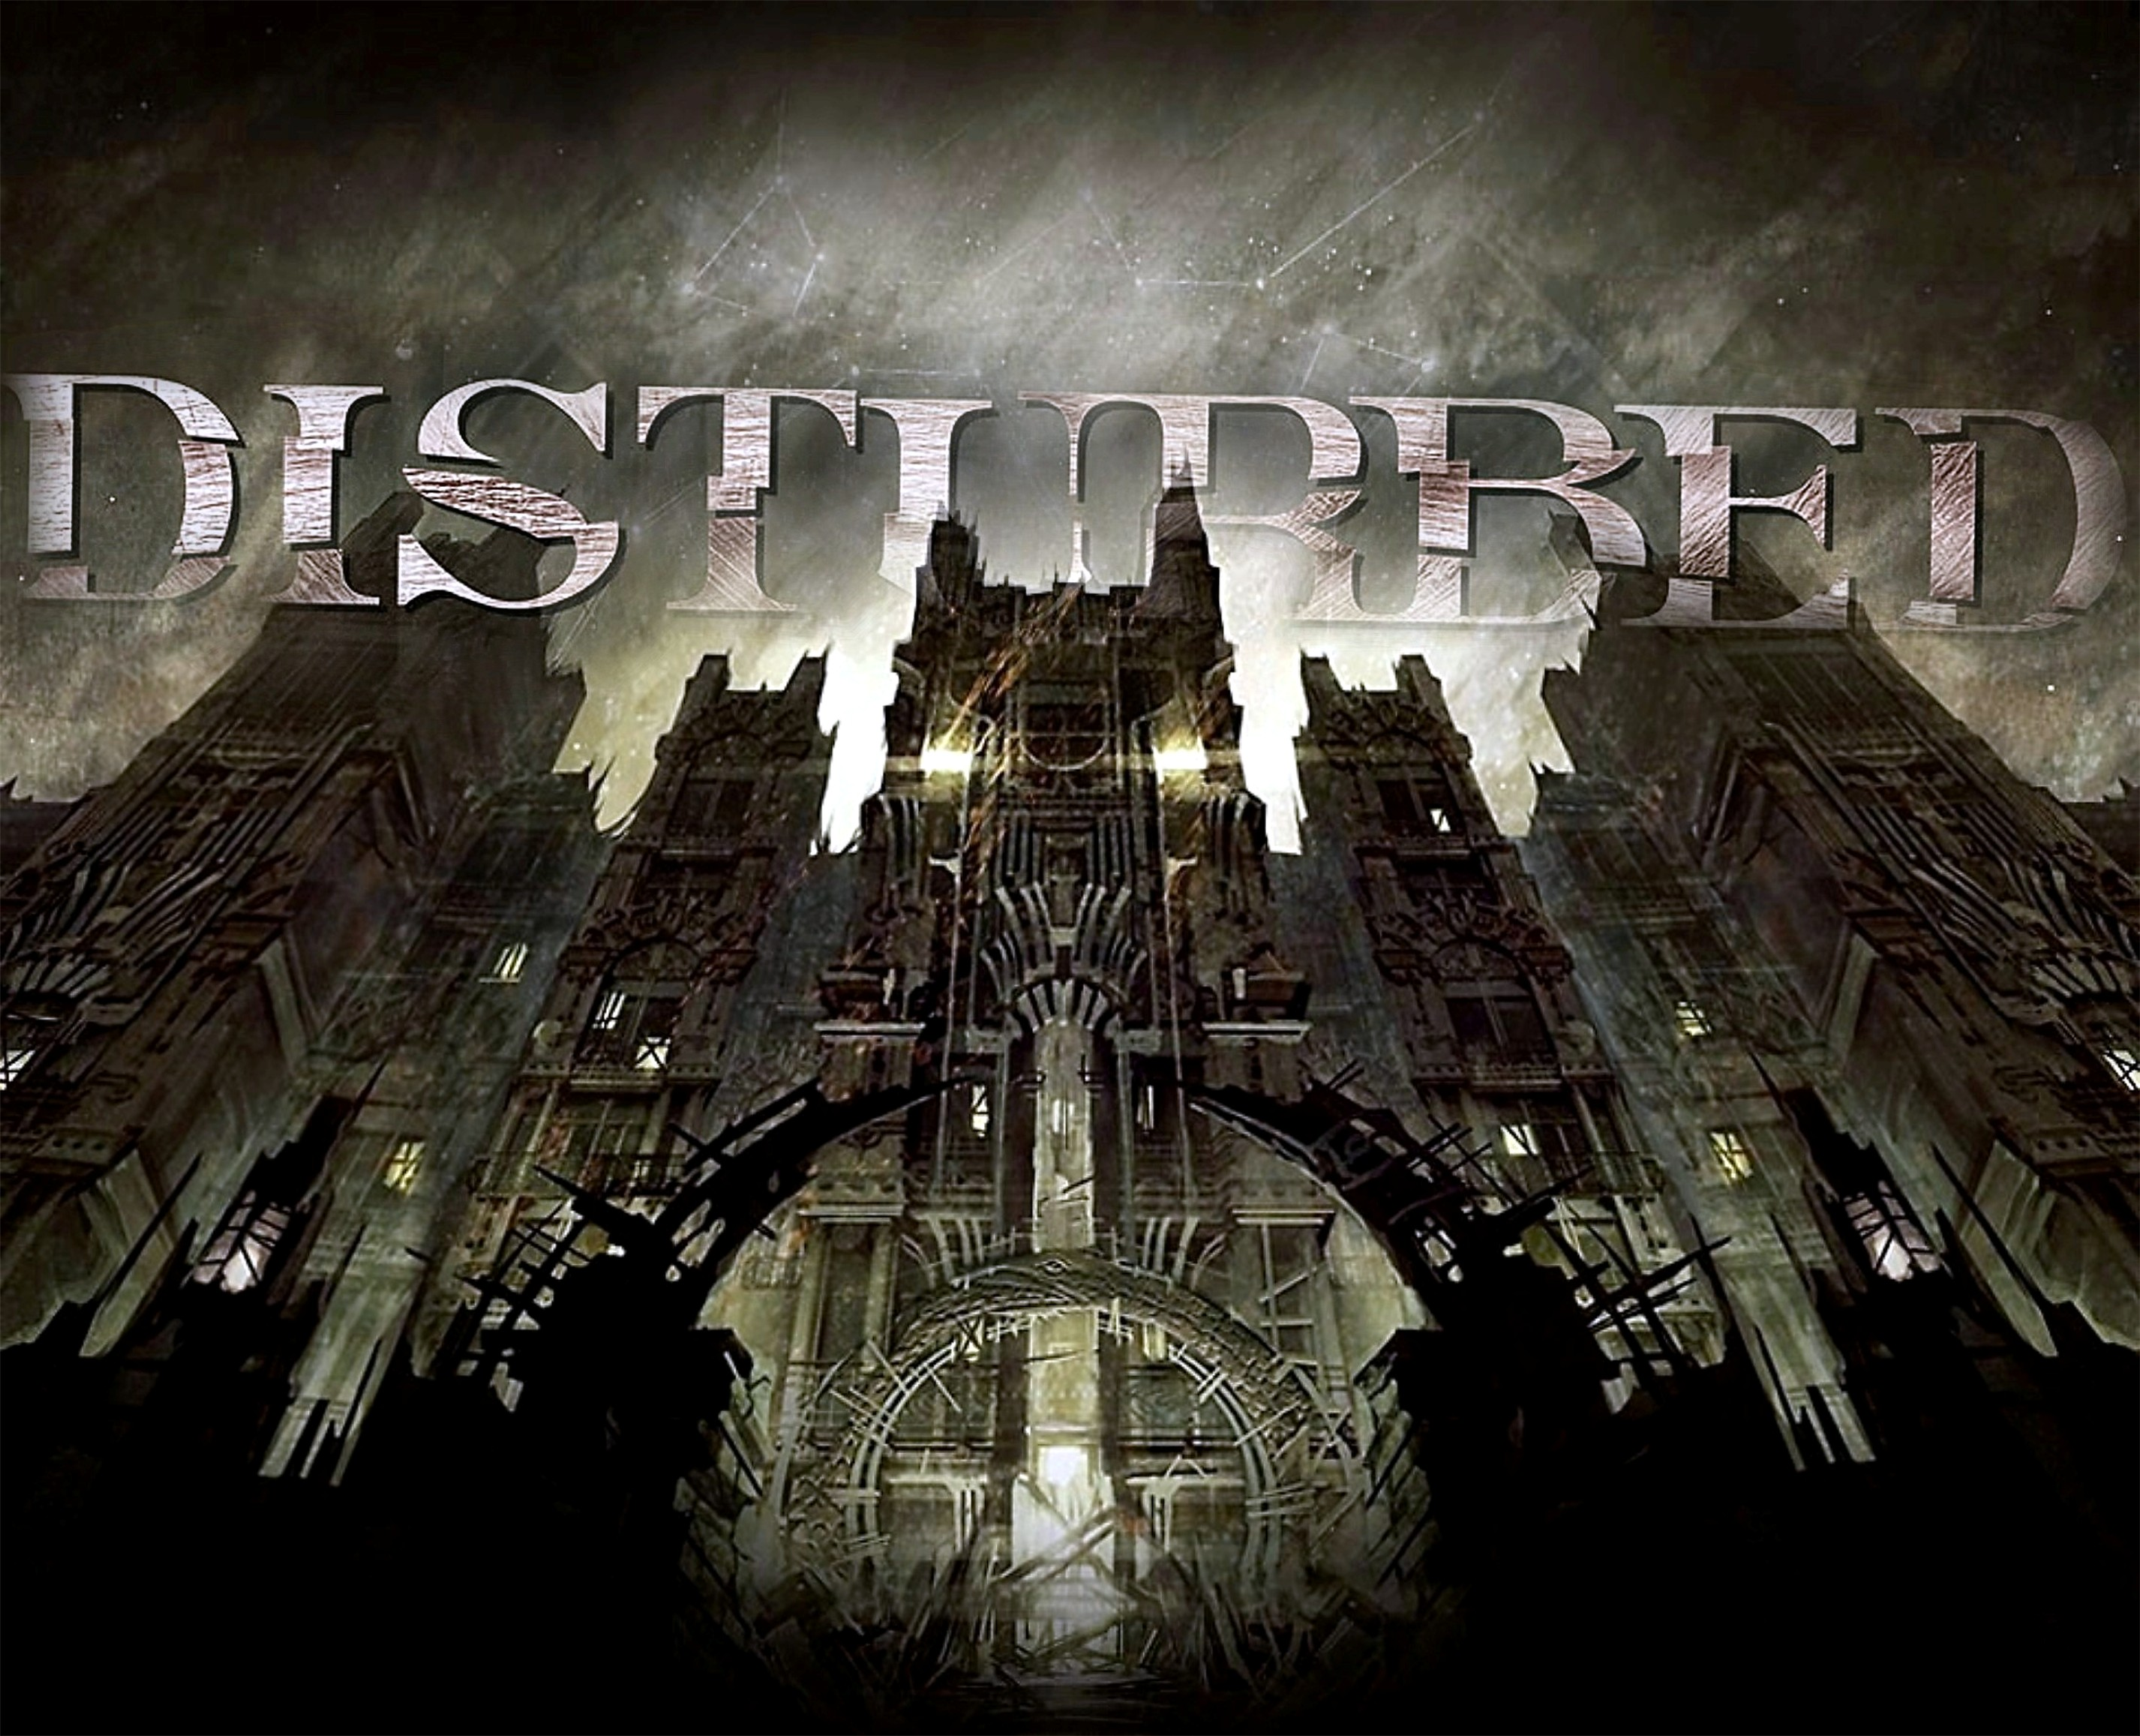 Musik - Disturbed  Metal Asylum Album Stricken Ten Thousand Fists Dropping Plates Musik Bakgrund